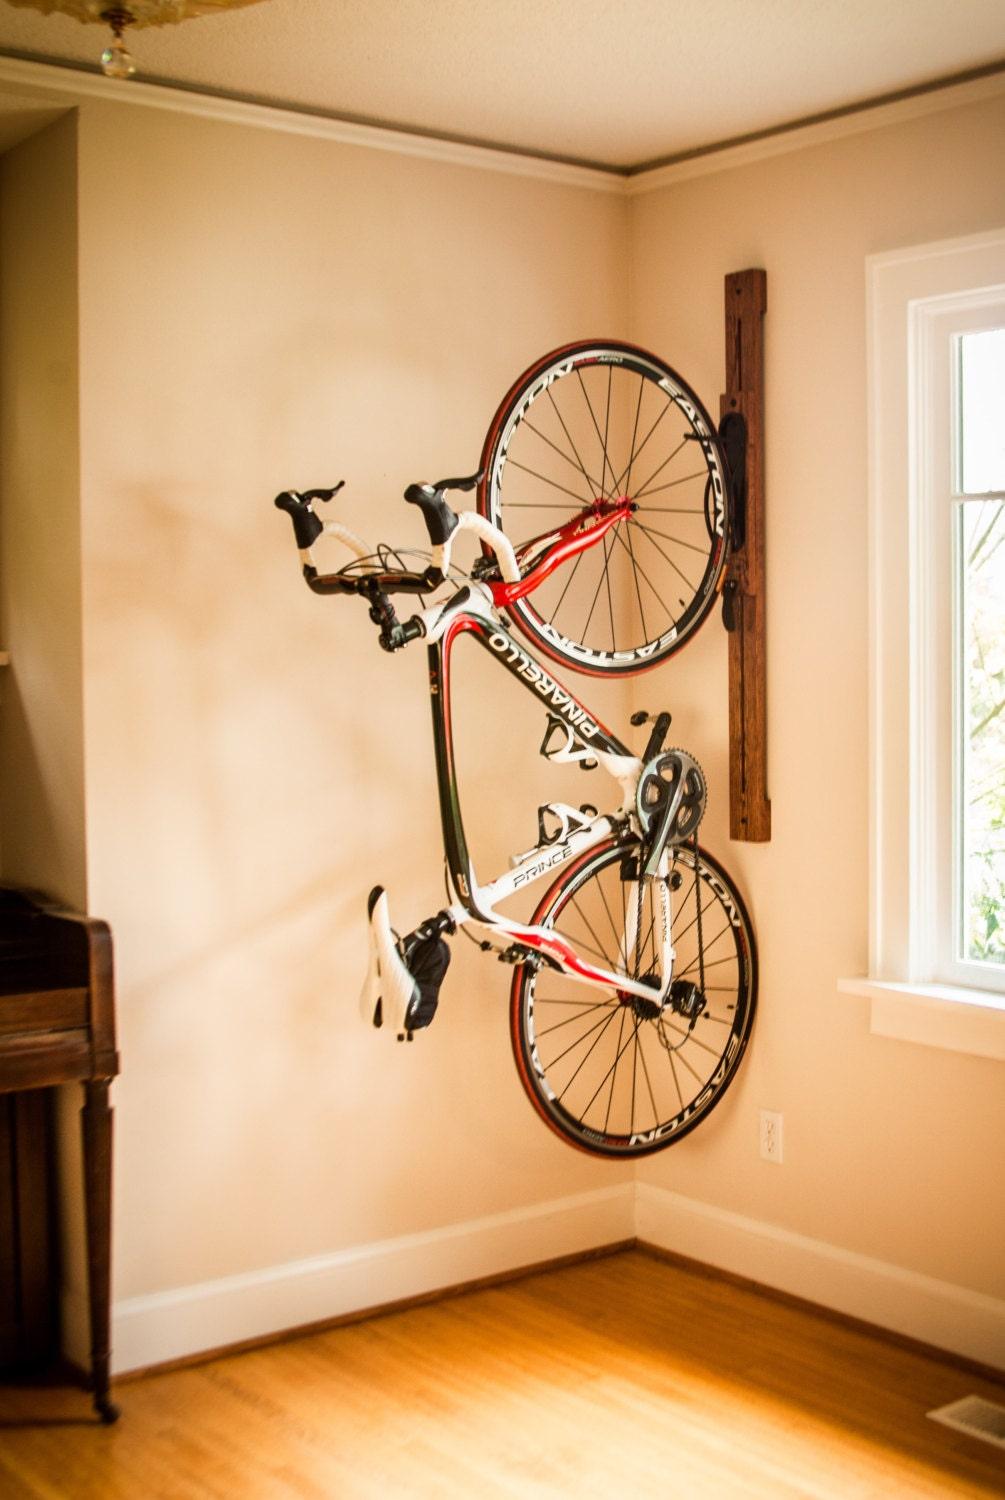 Bike rack 4 Adjustable Vertical Wall-Mount for Home or